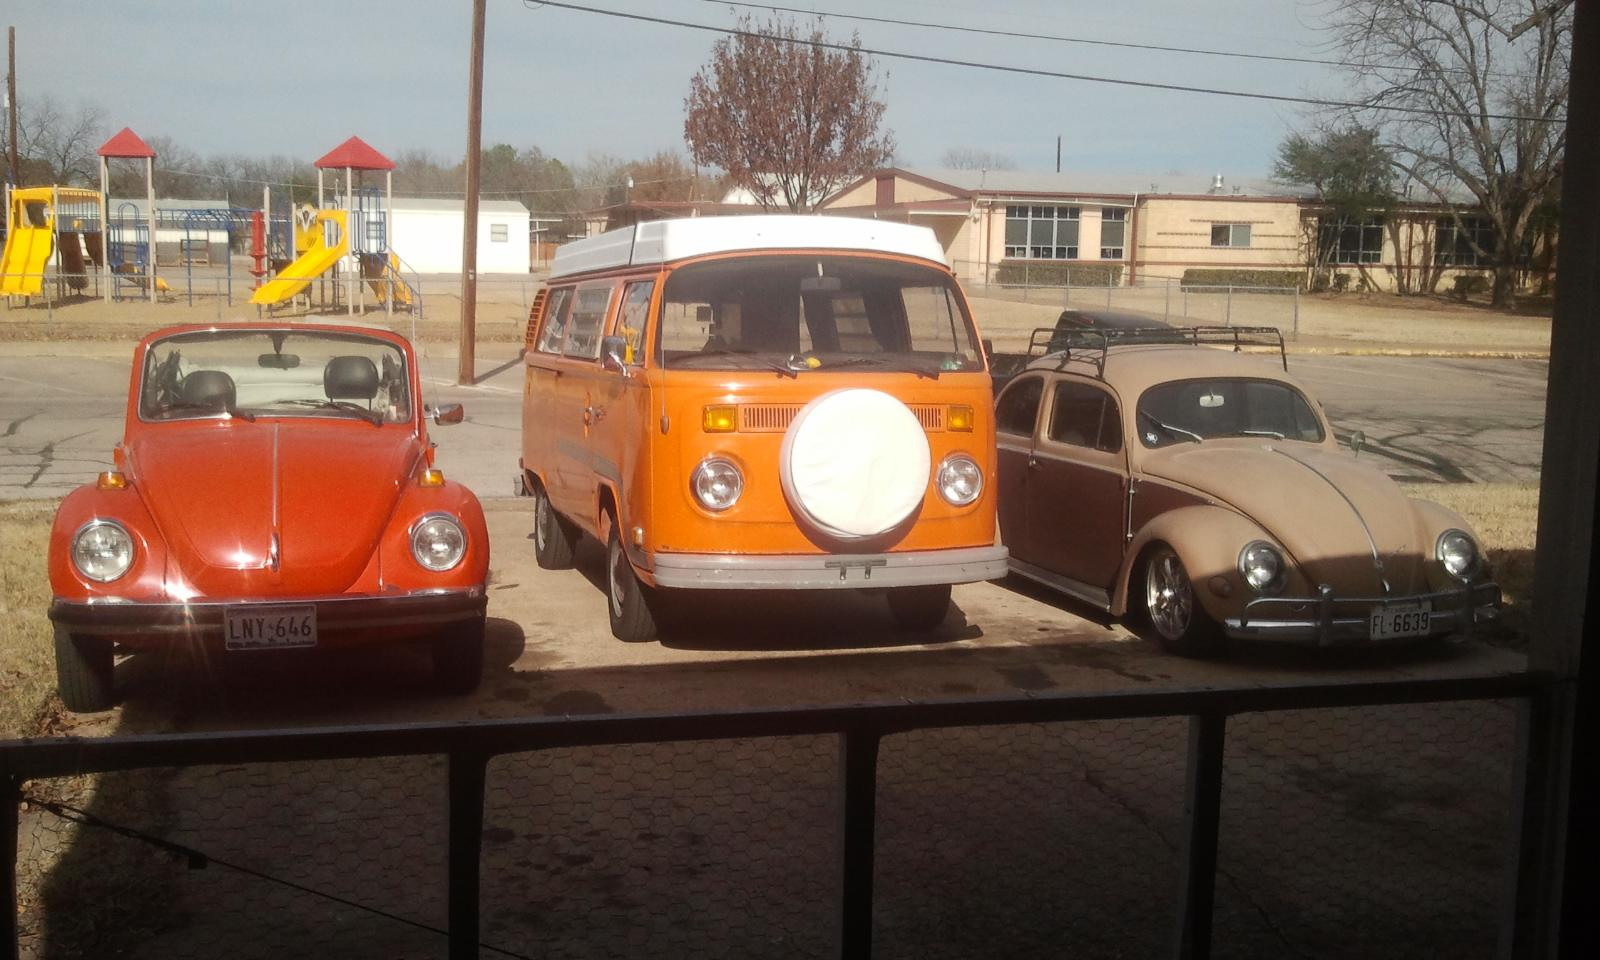 My 3 VDubs...Two fat chicks and an Oval '77 Vert, '75 Westy, '57 Oval